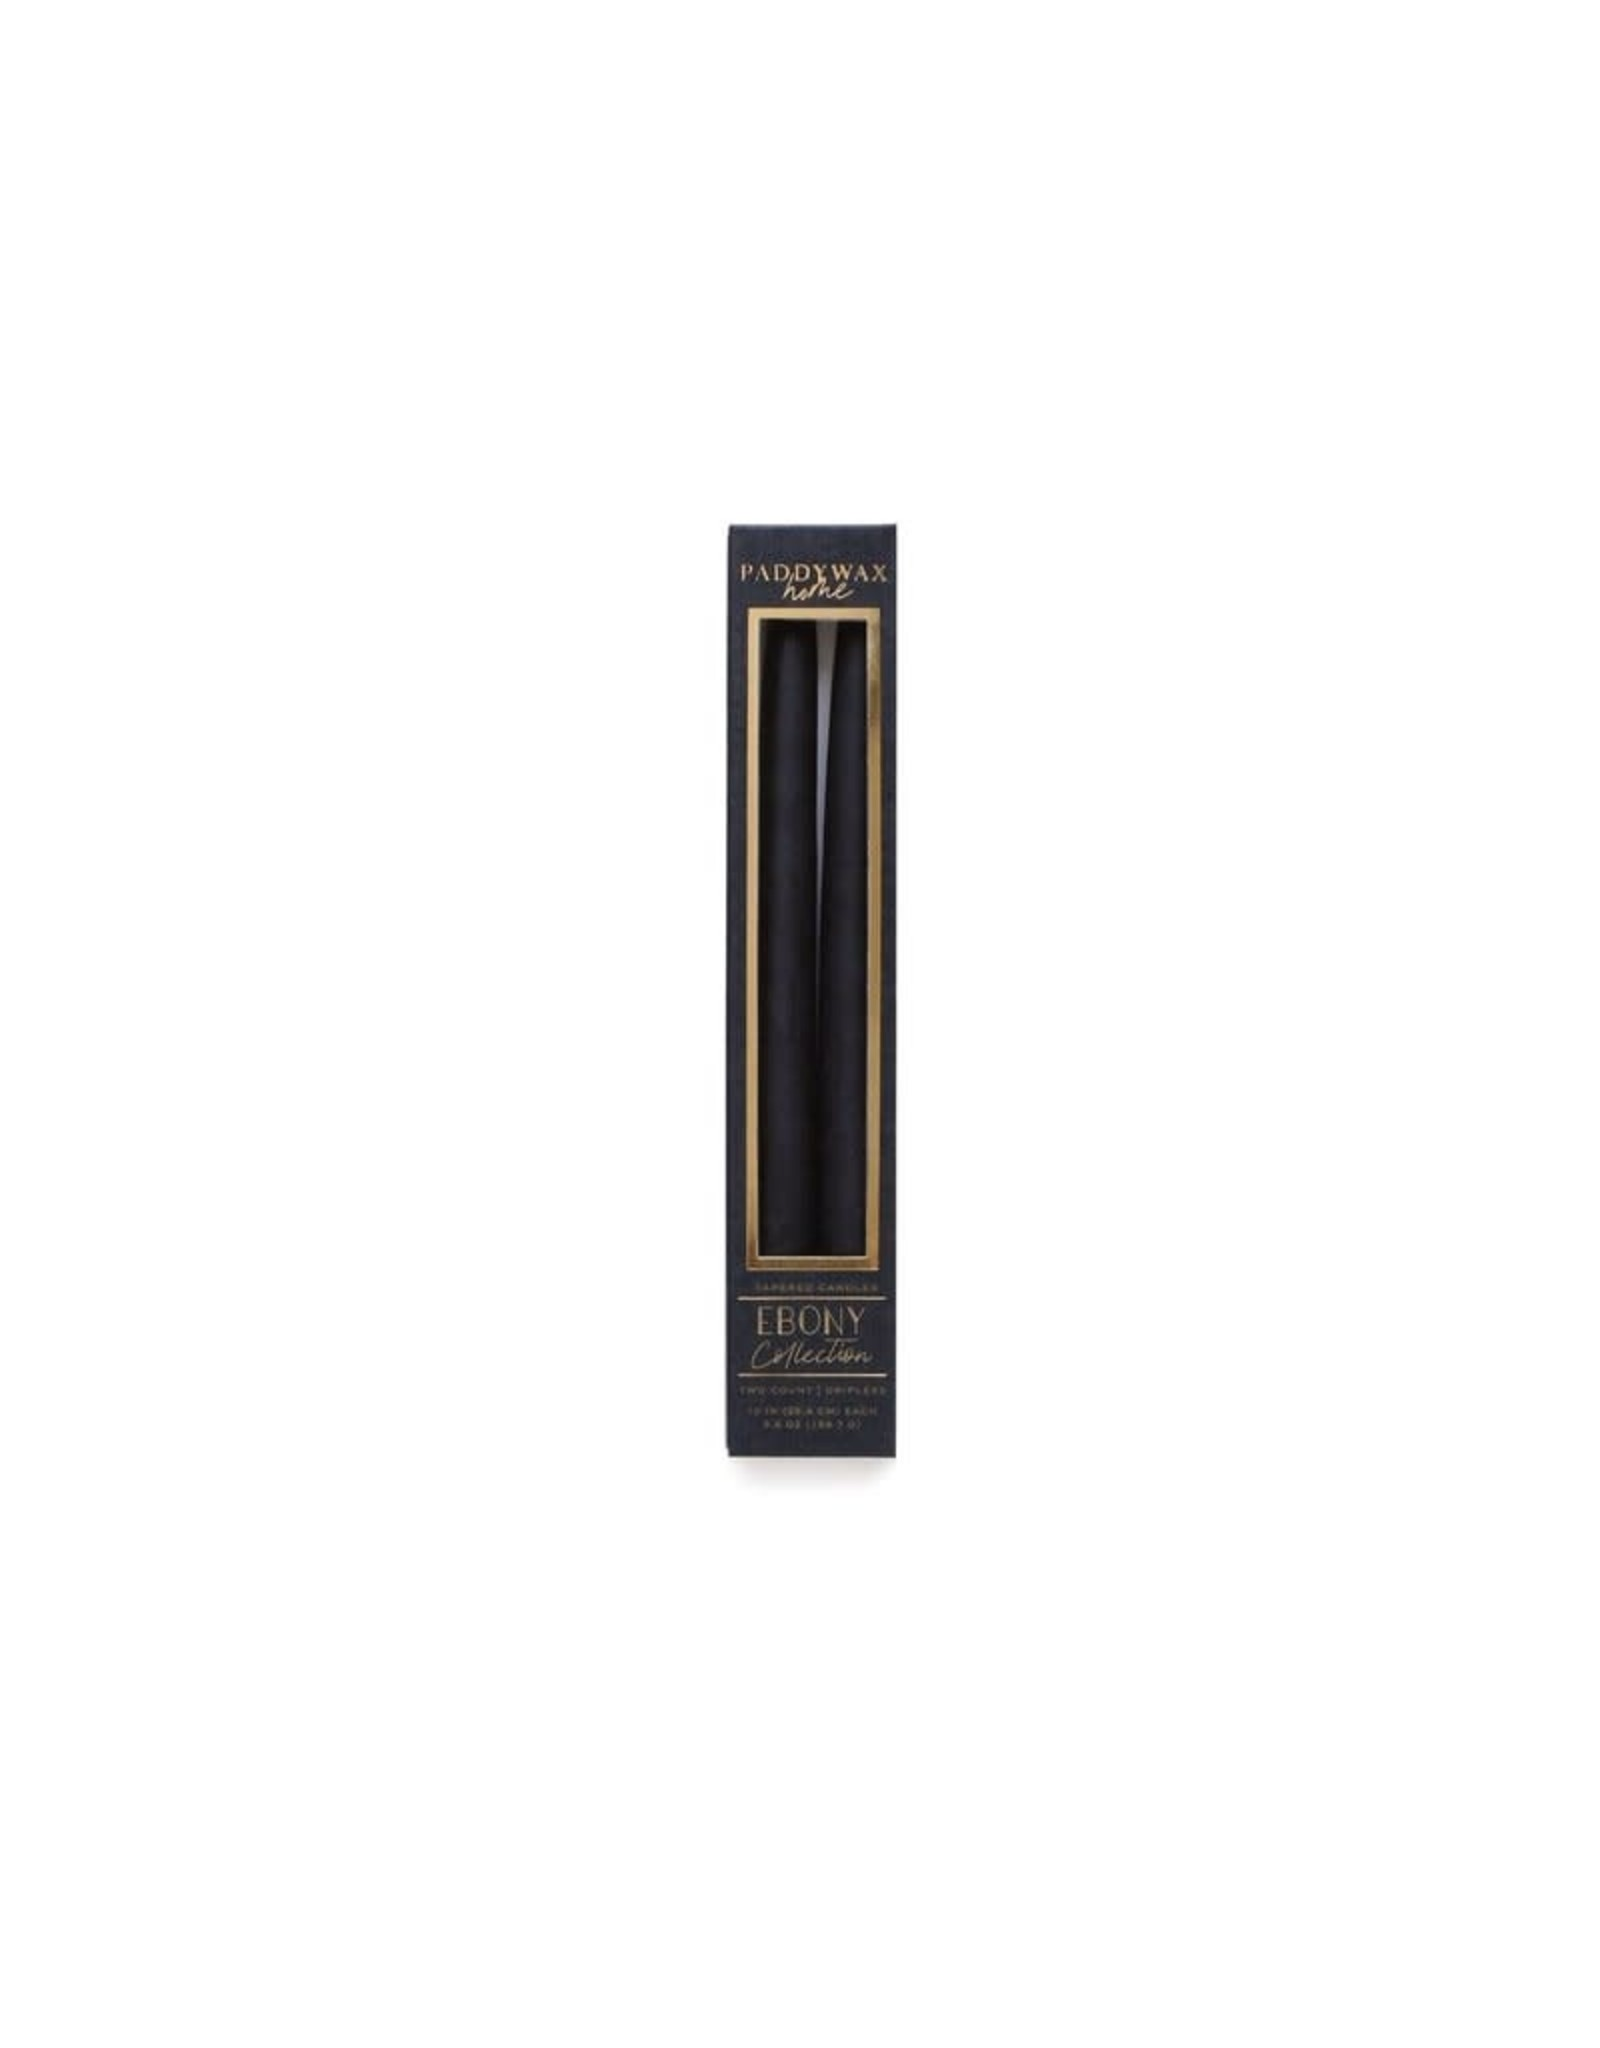 "PADDYWAX 10"" TAPPERED CANDLE 2 PACK - EBONY"